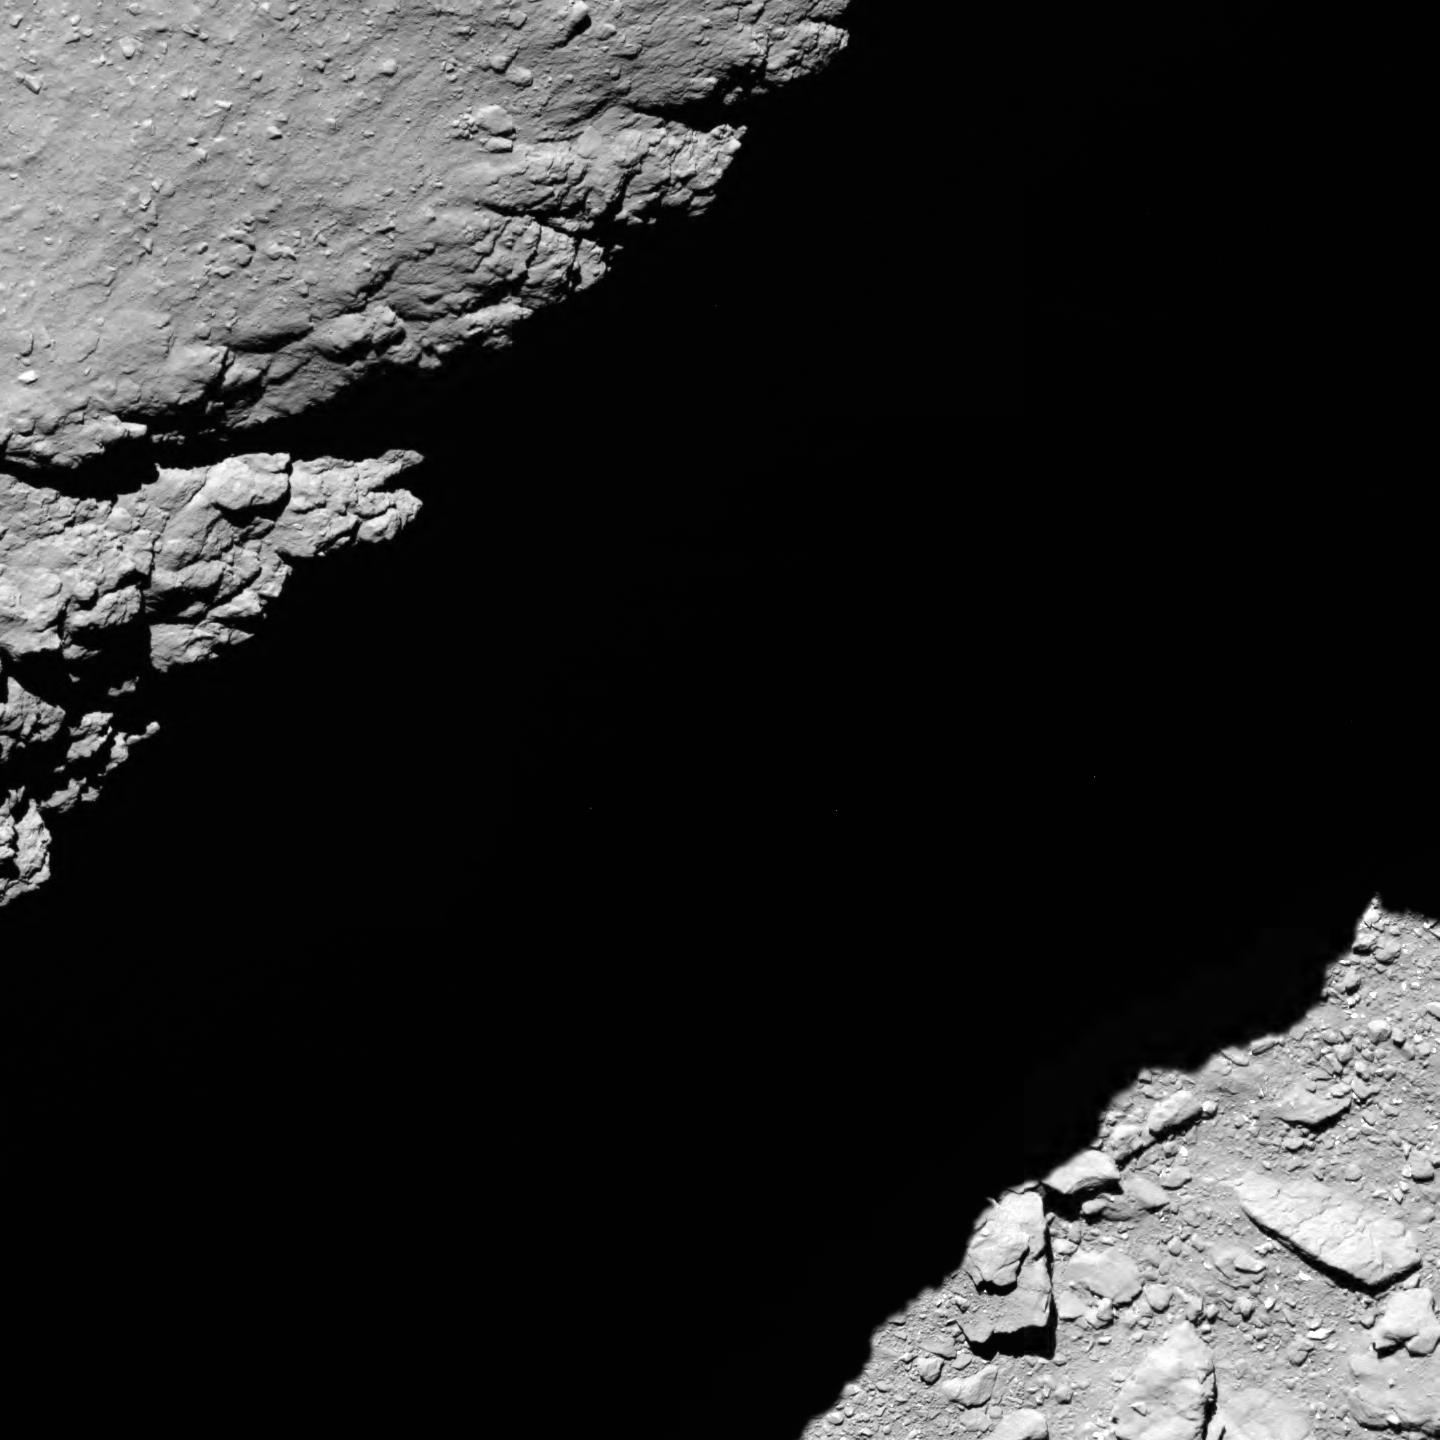 Incredible view 1.2 km from the surface! #CometLanding https://t.co/BMzkfFMKp4 https://t.co/N5riAfHxEV